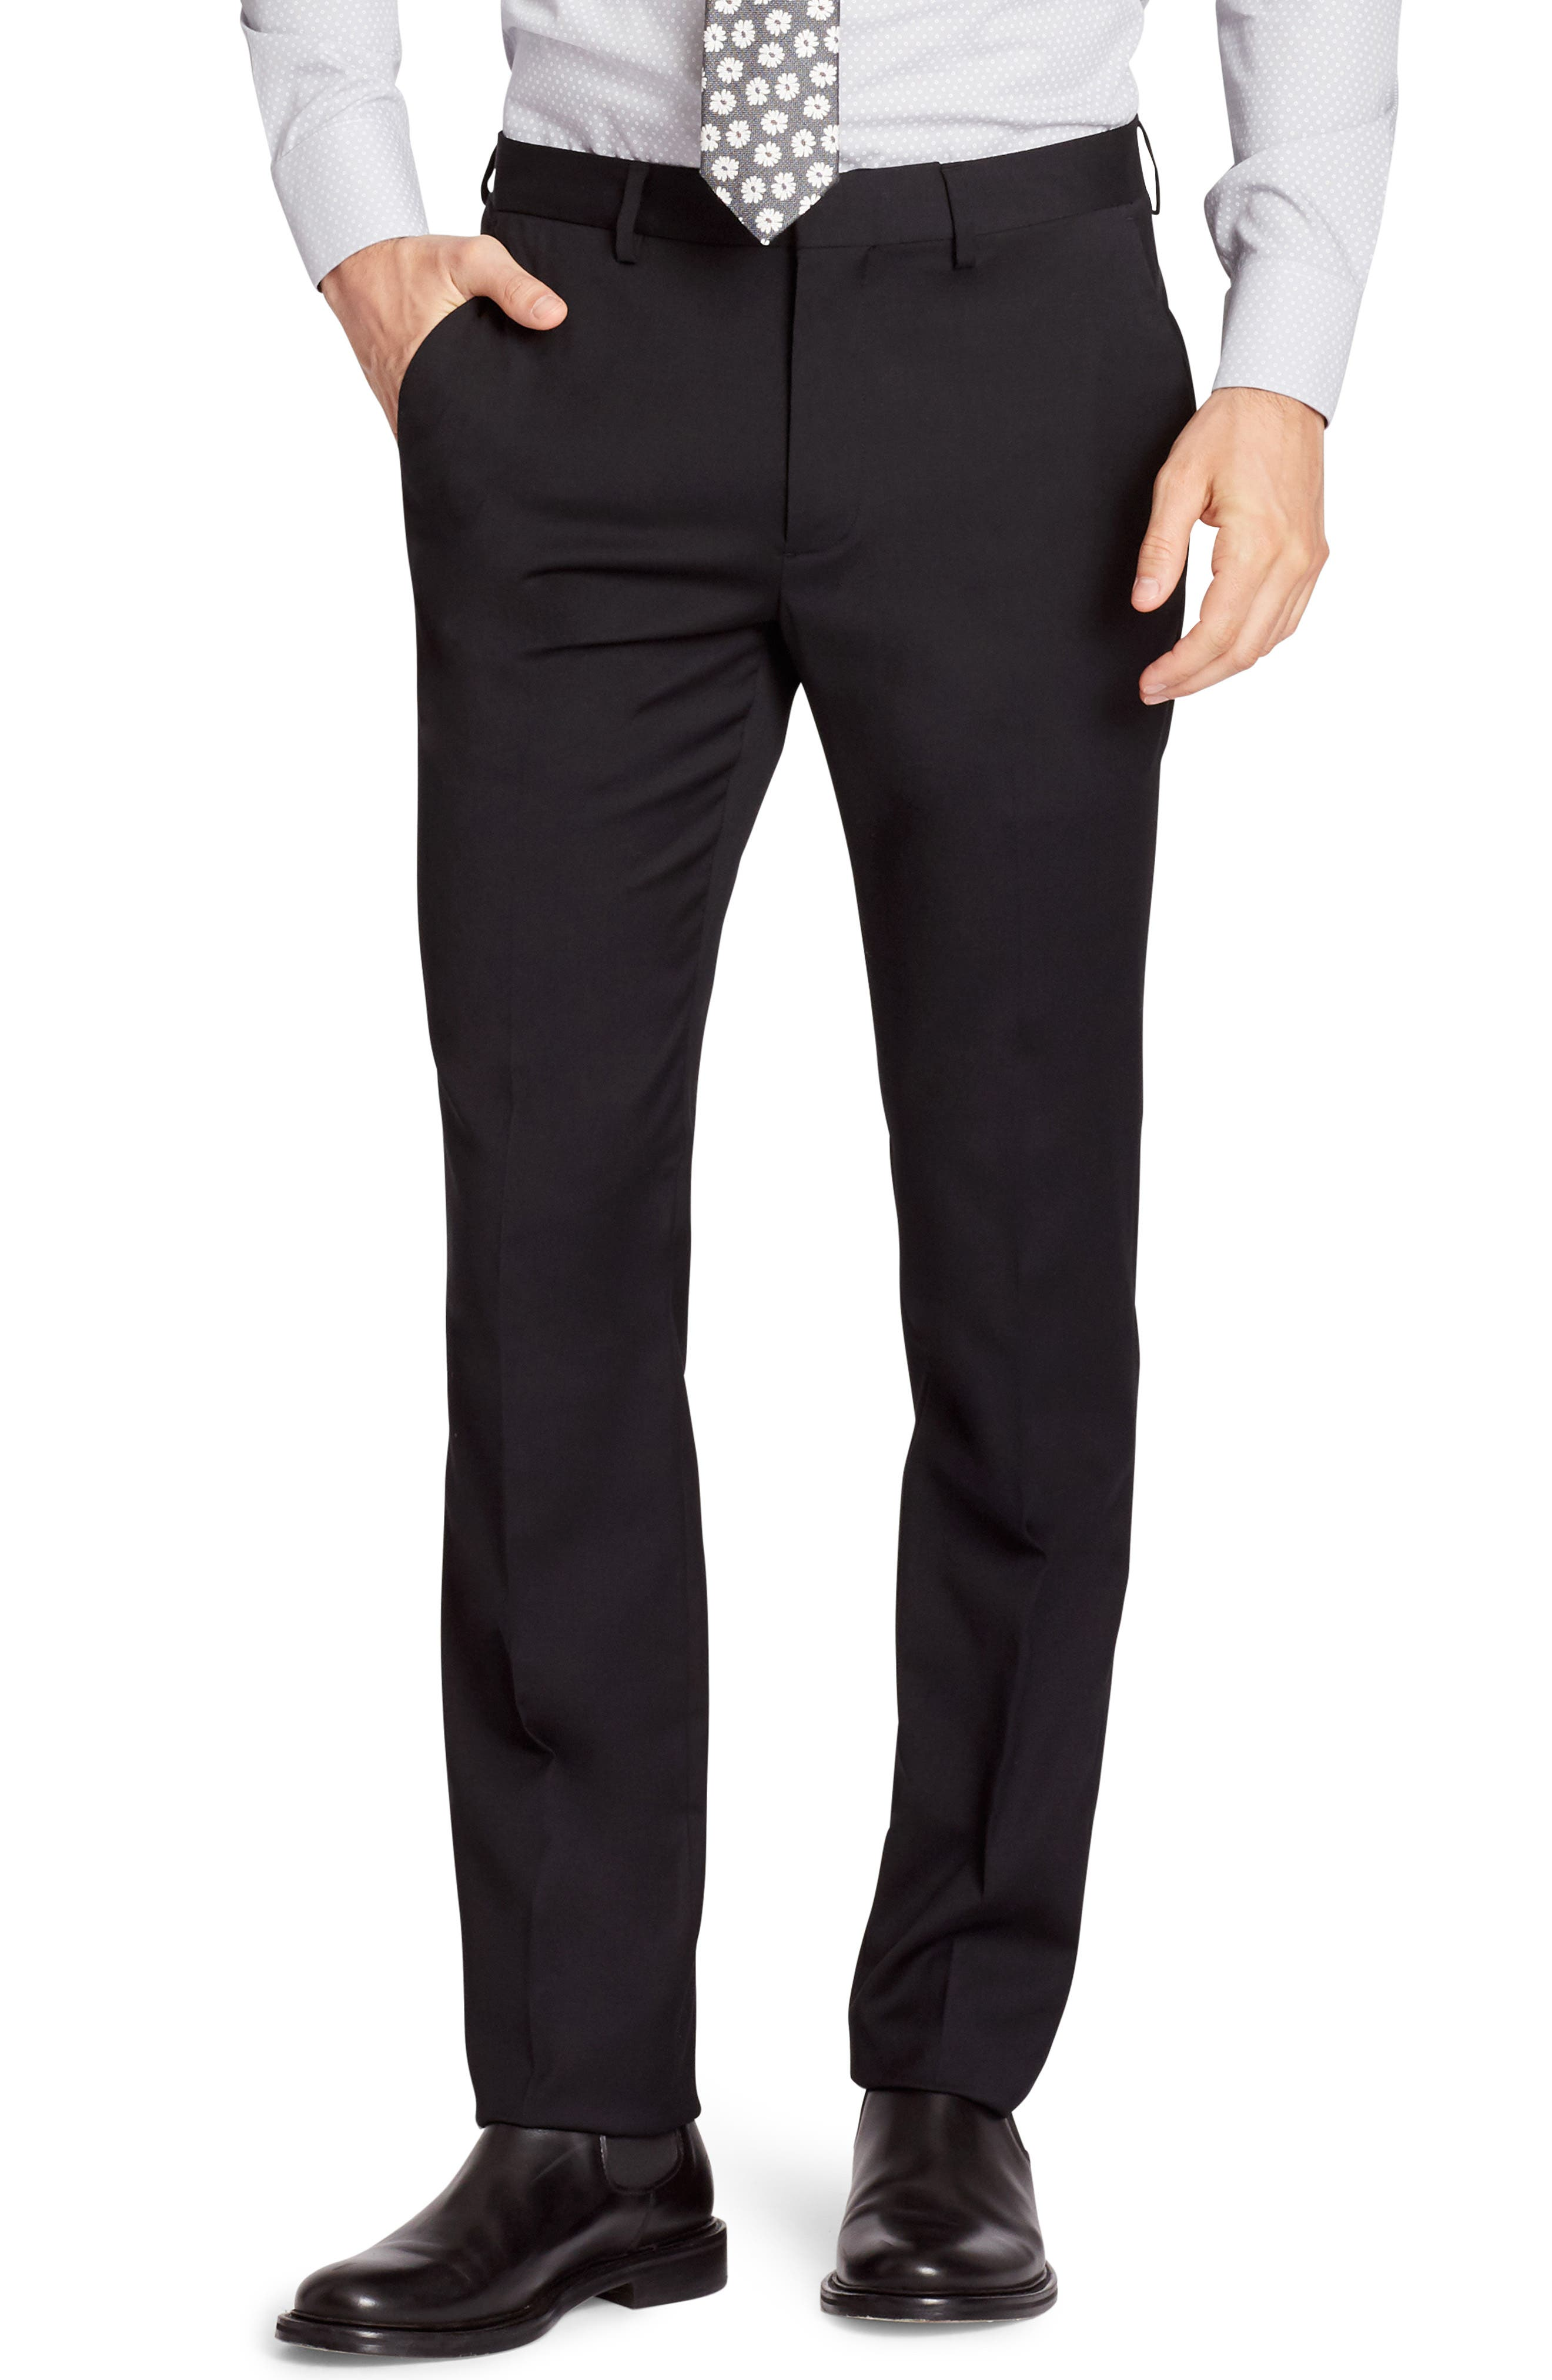 Main Image - Bonobos Jetsetter Flat Front Stretch Wool Trousers (Tall)